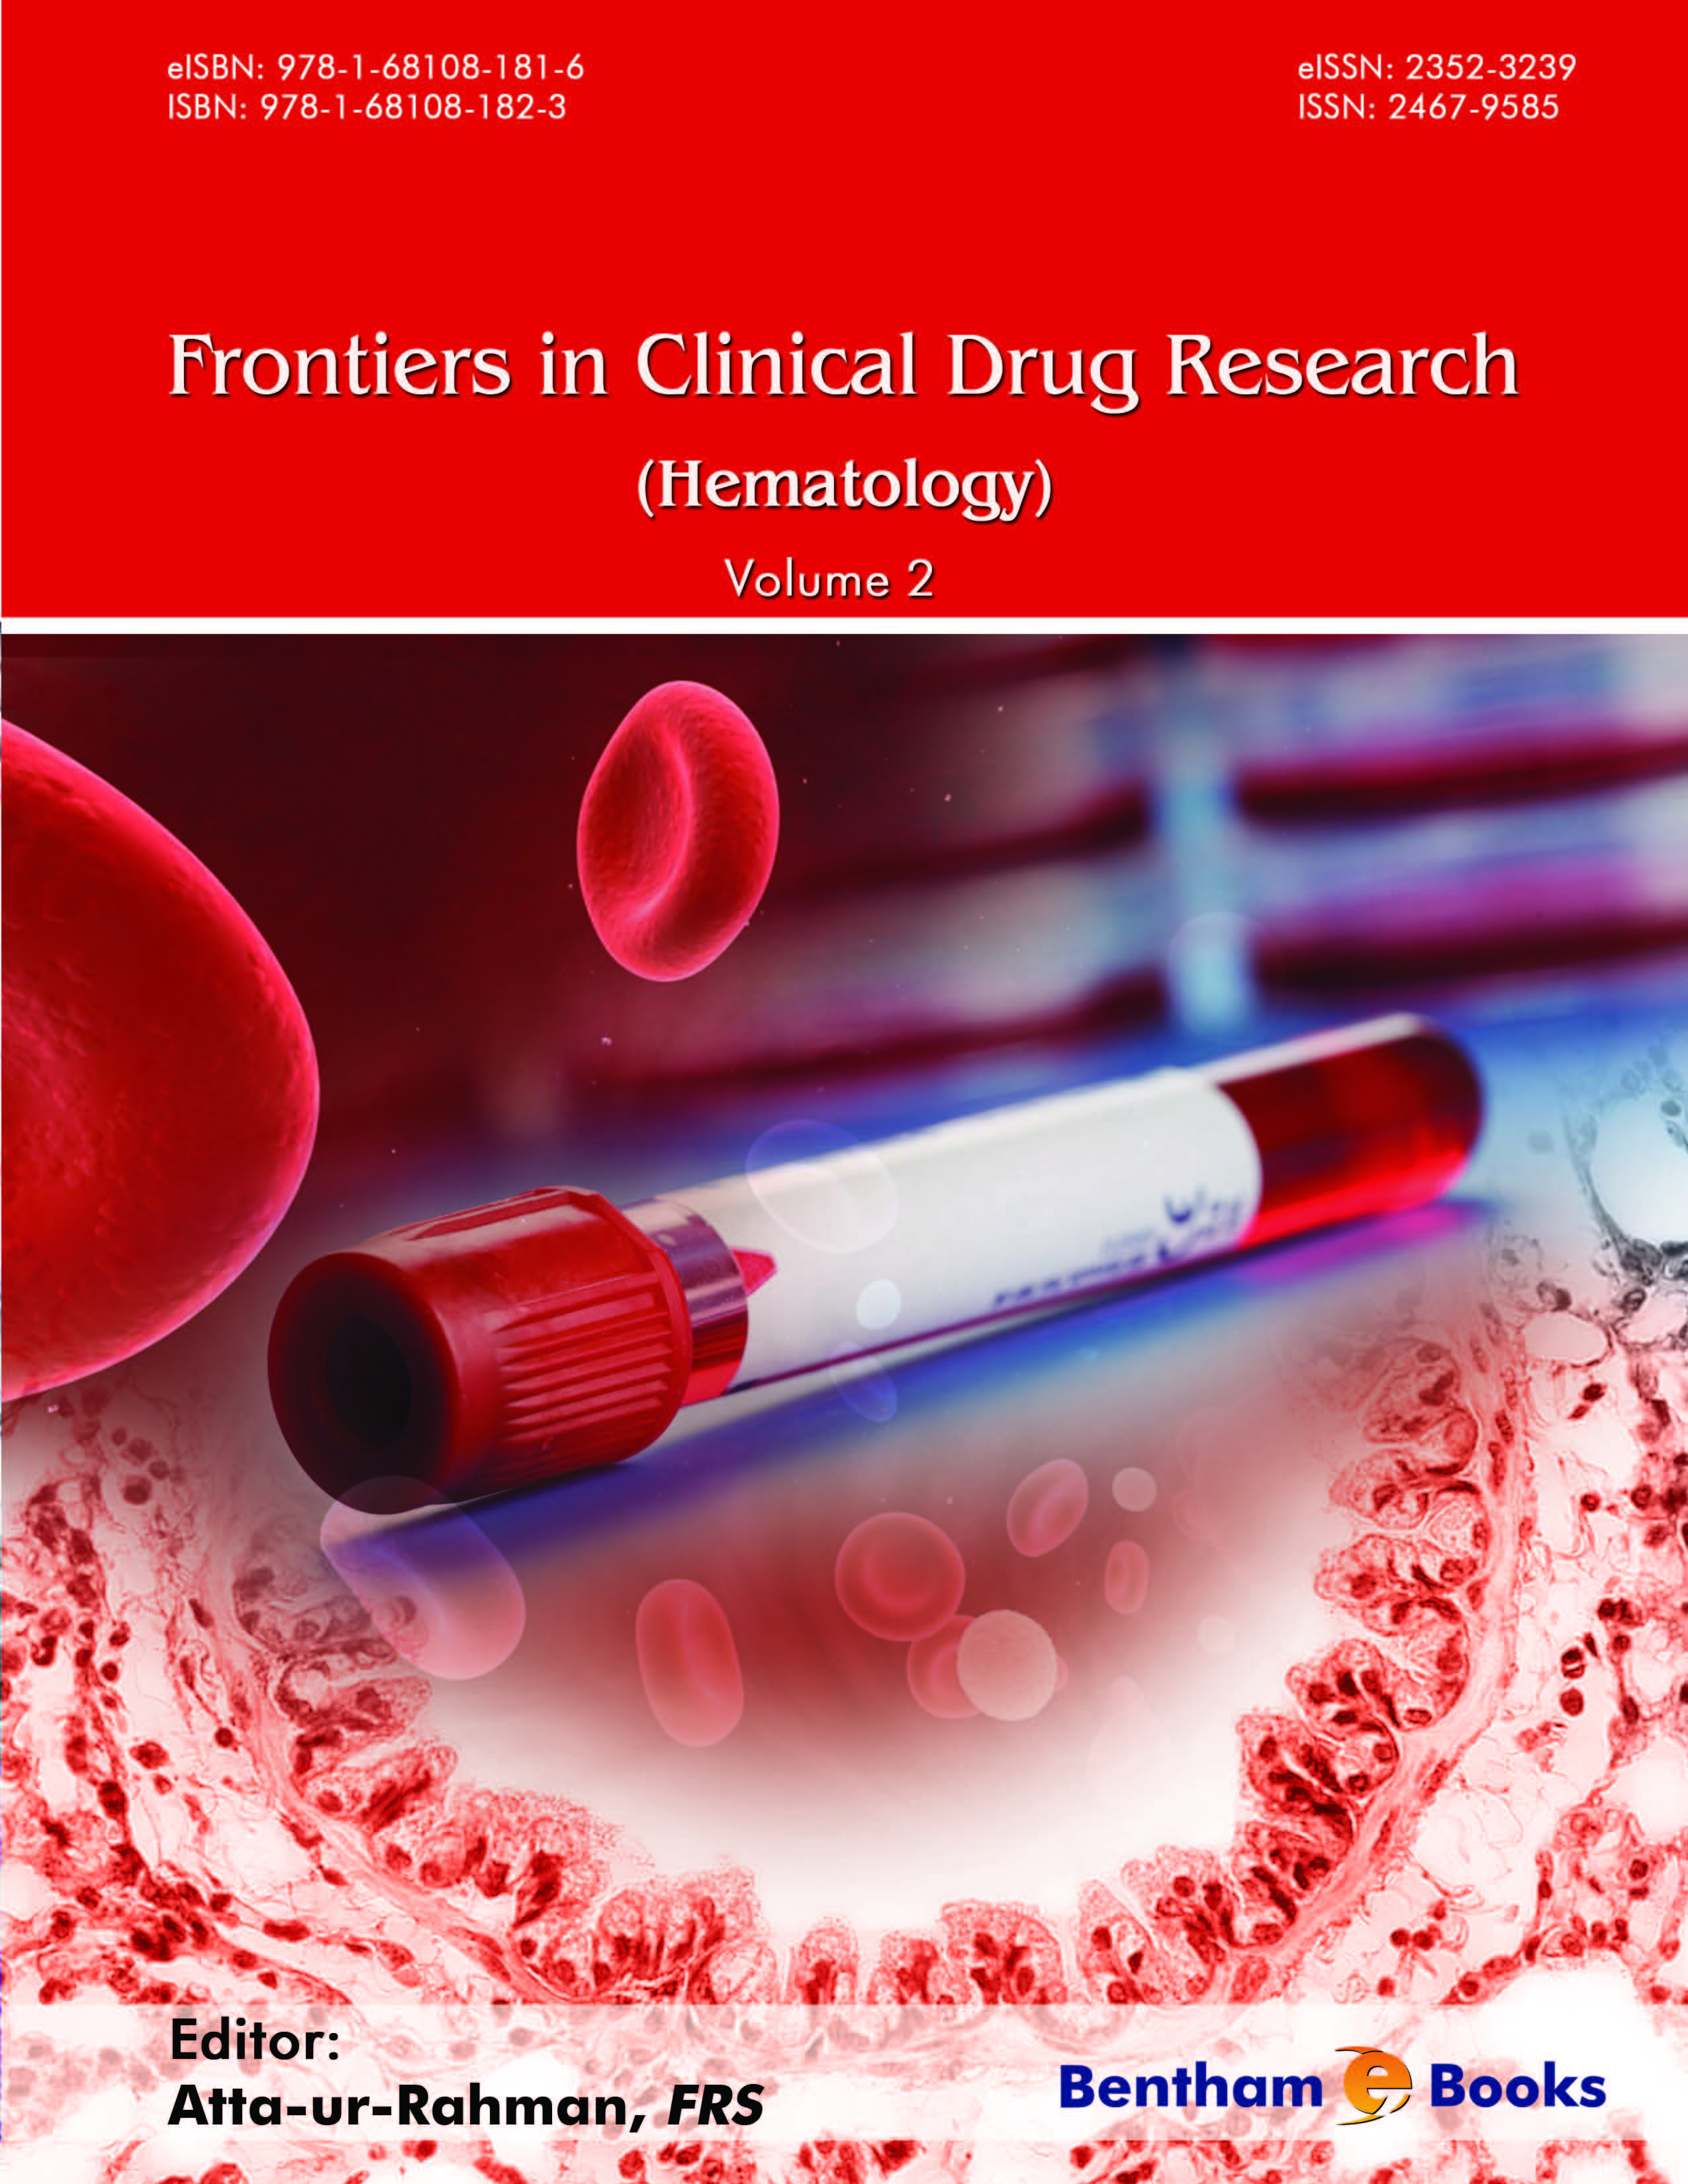 Frontiers in Clinical Drug Research-Hematology